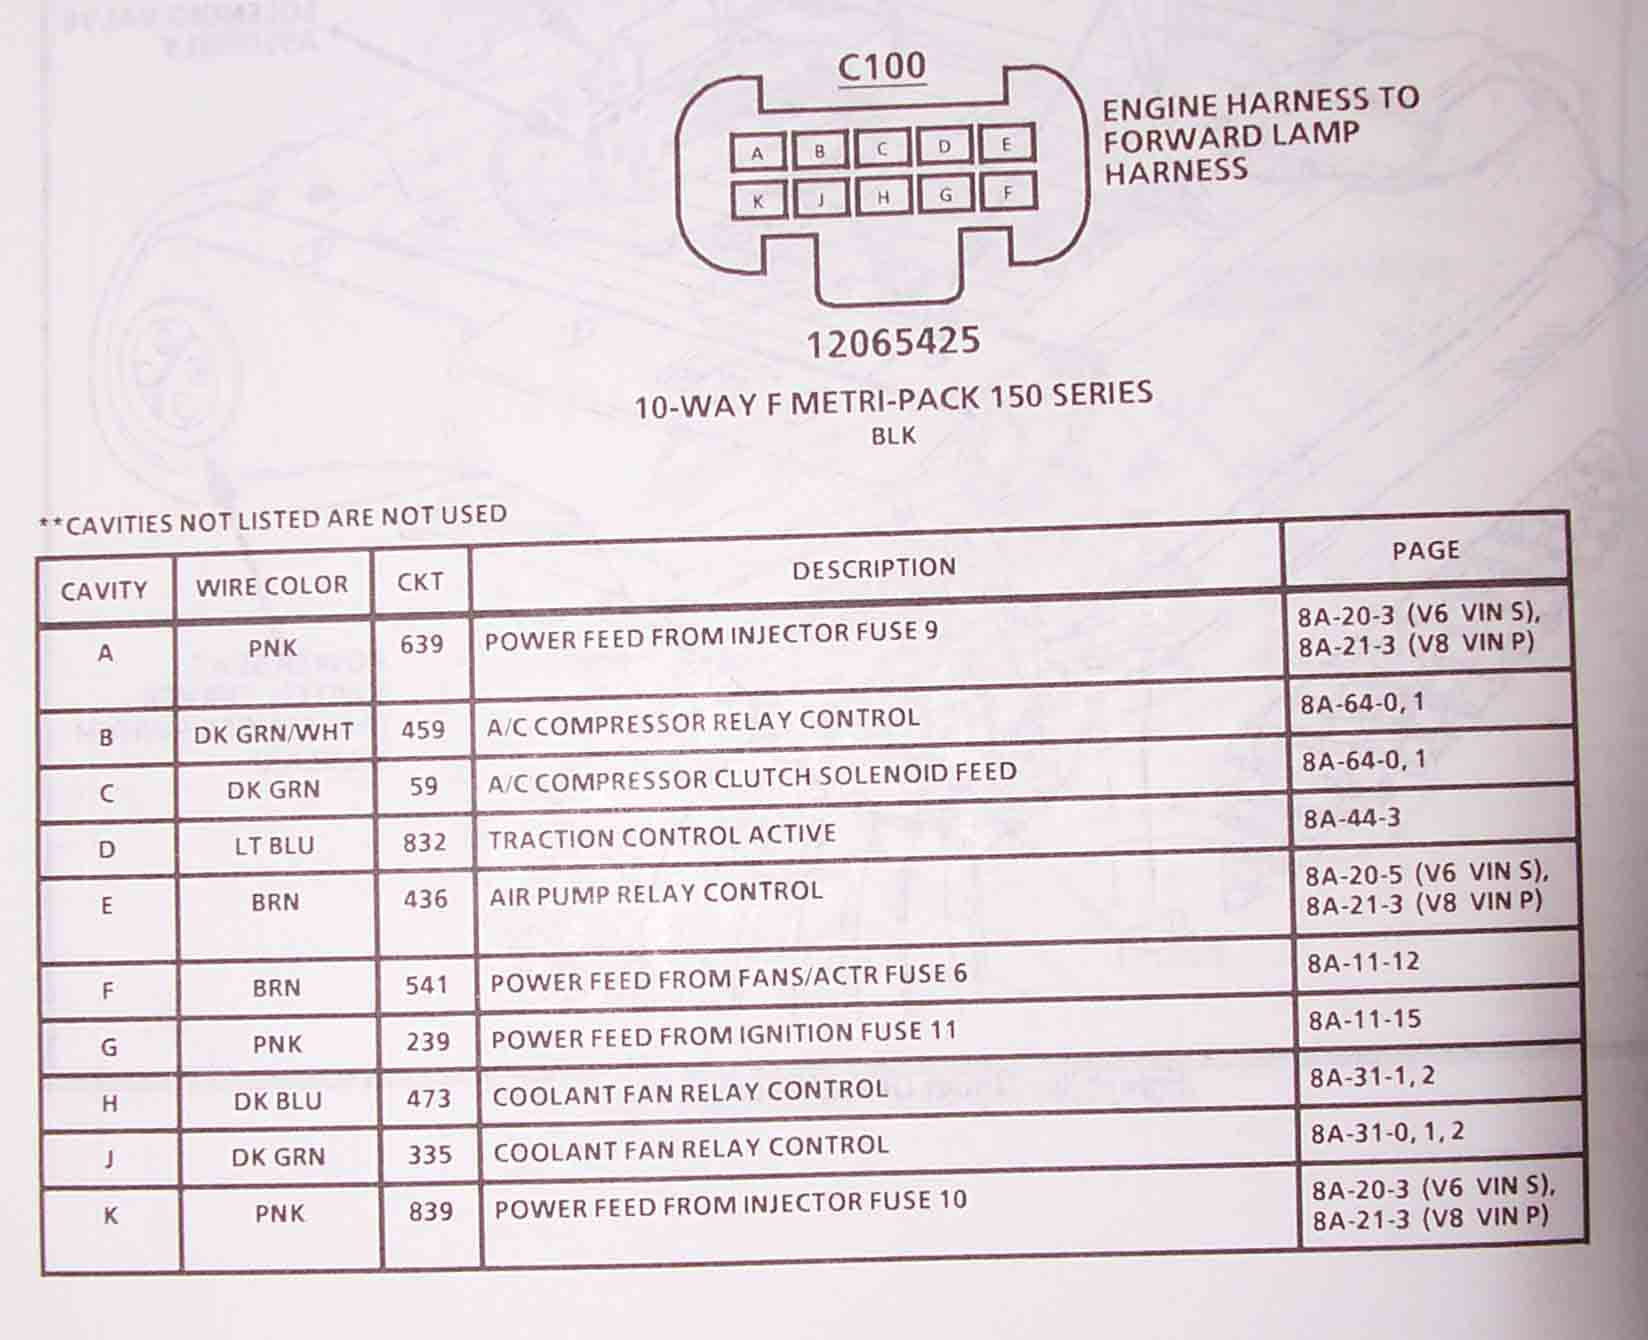 hight resolution of 1995 f body wire harness schematics lt1 conversion wiring harness 1995 lt1 wiring harness labeled